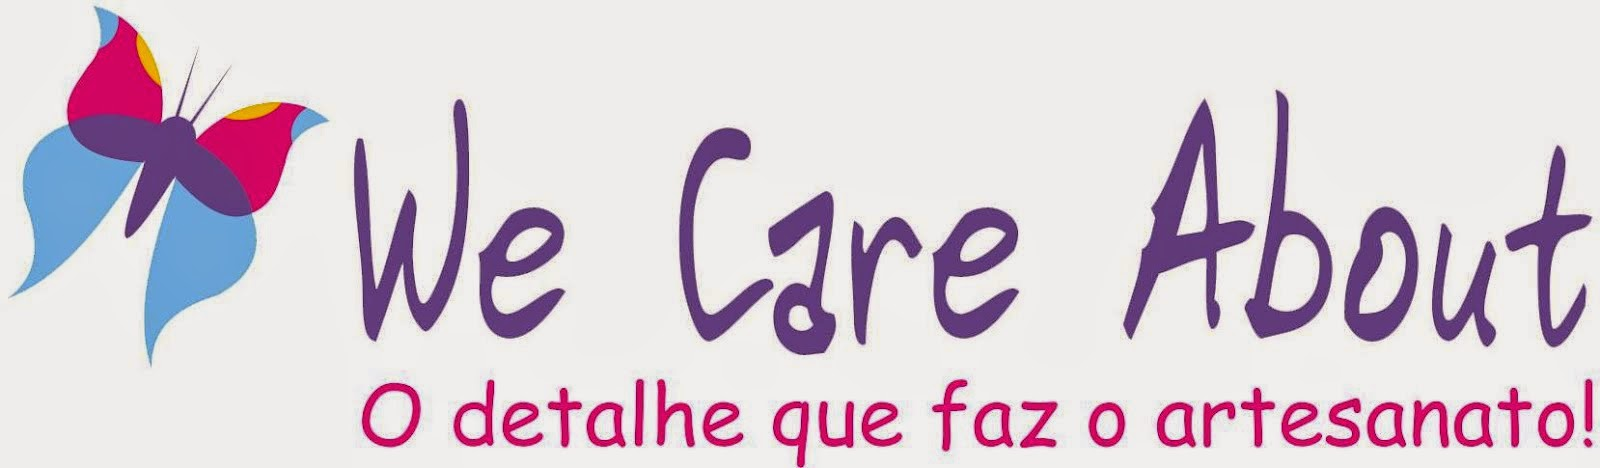 We Care About